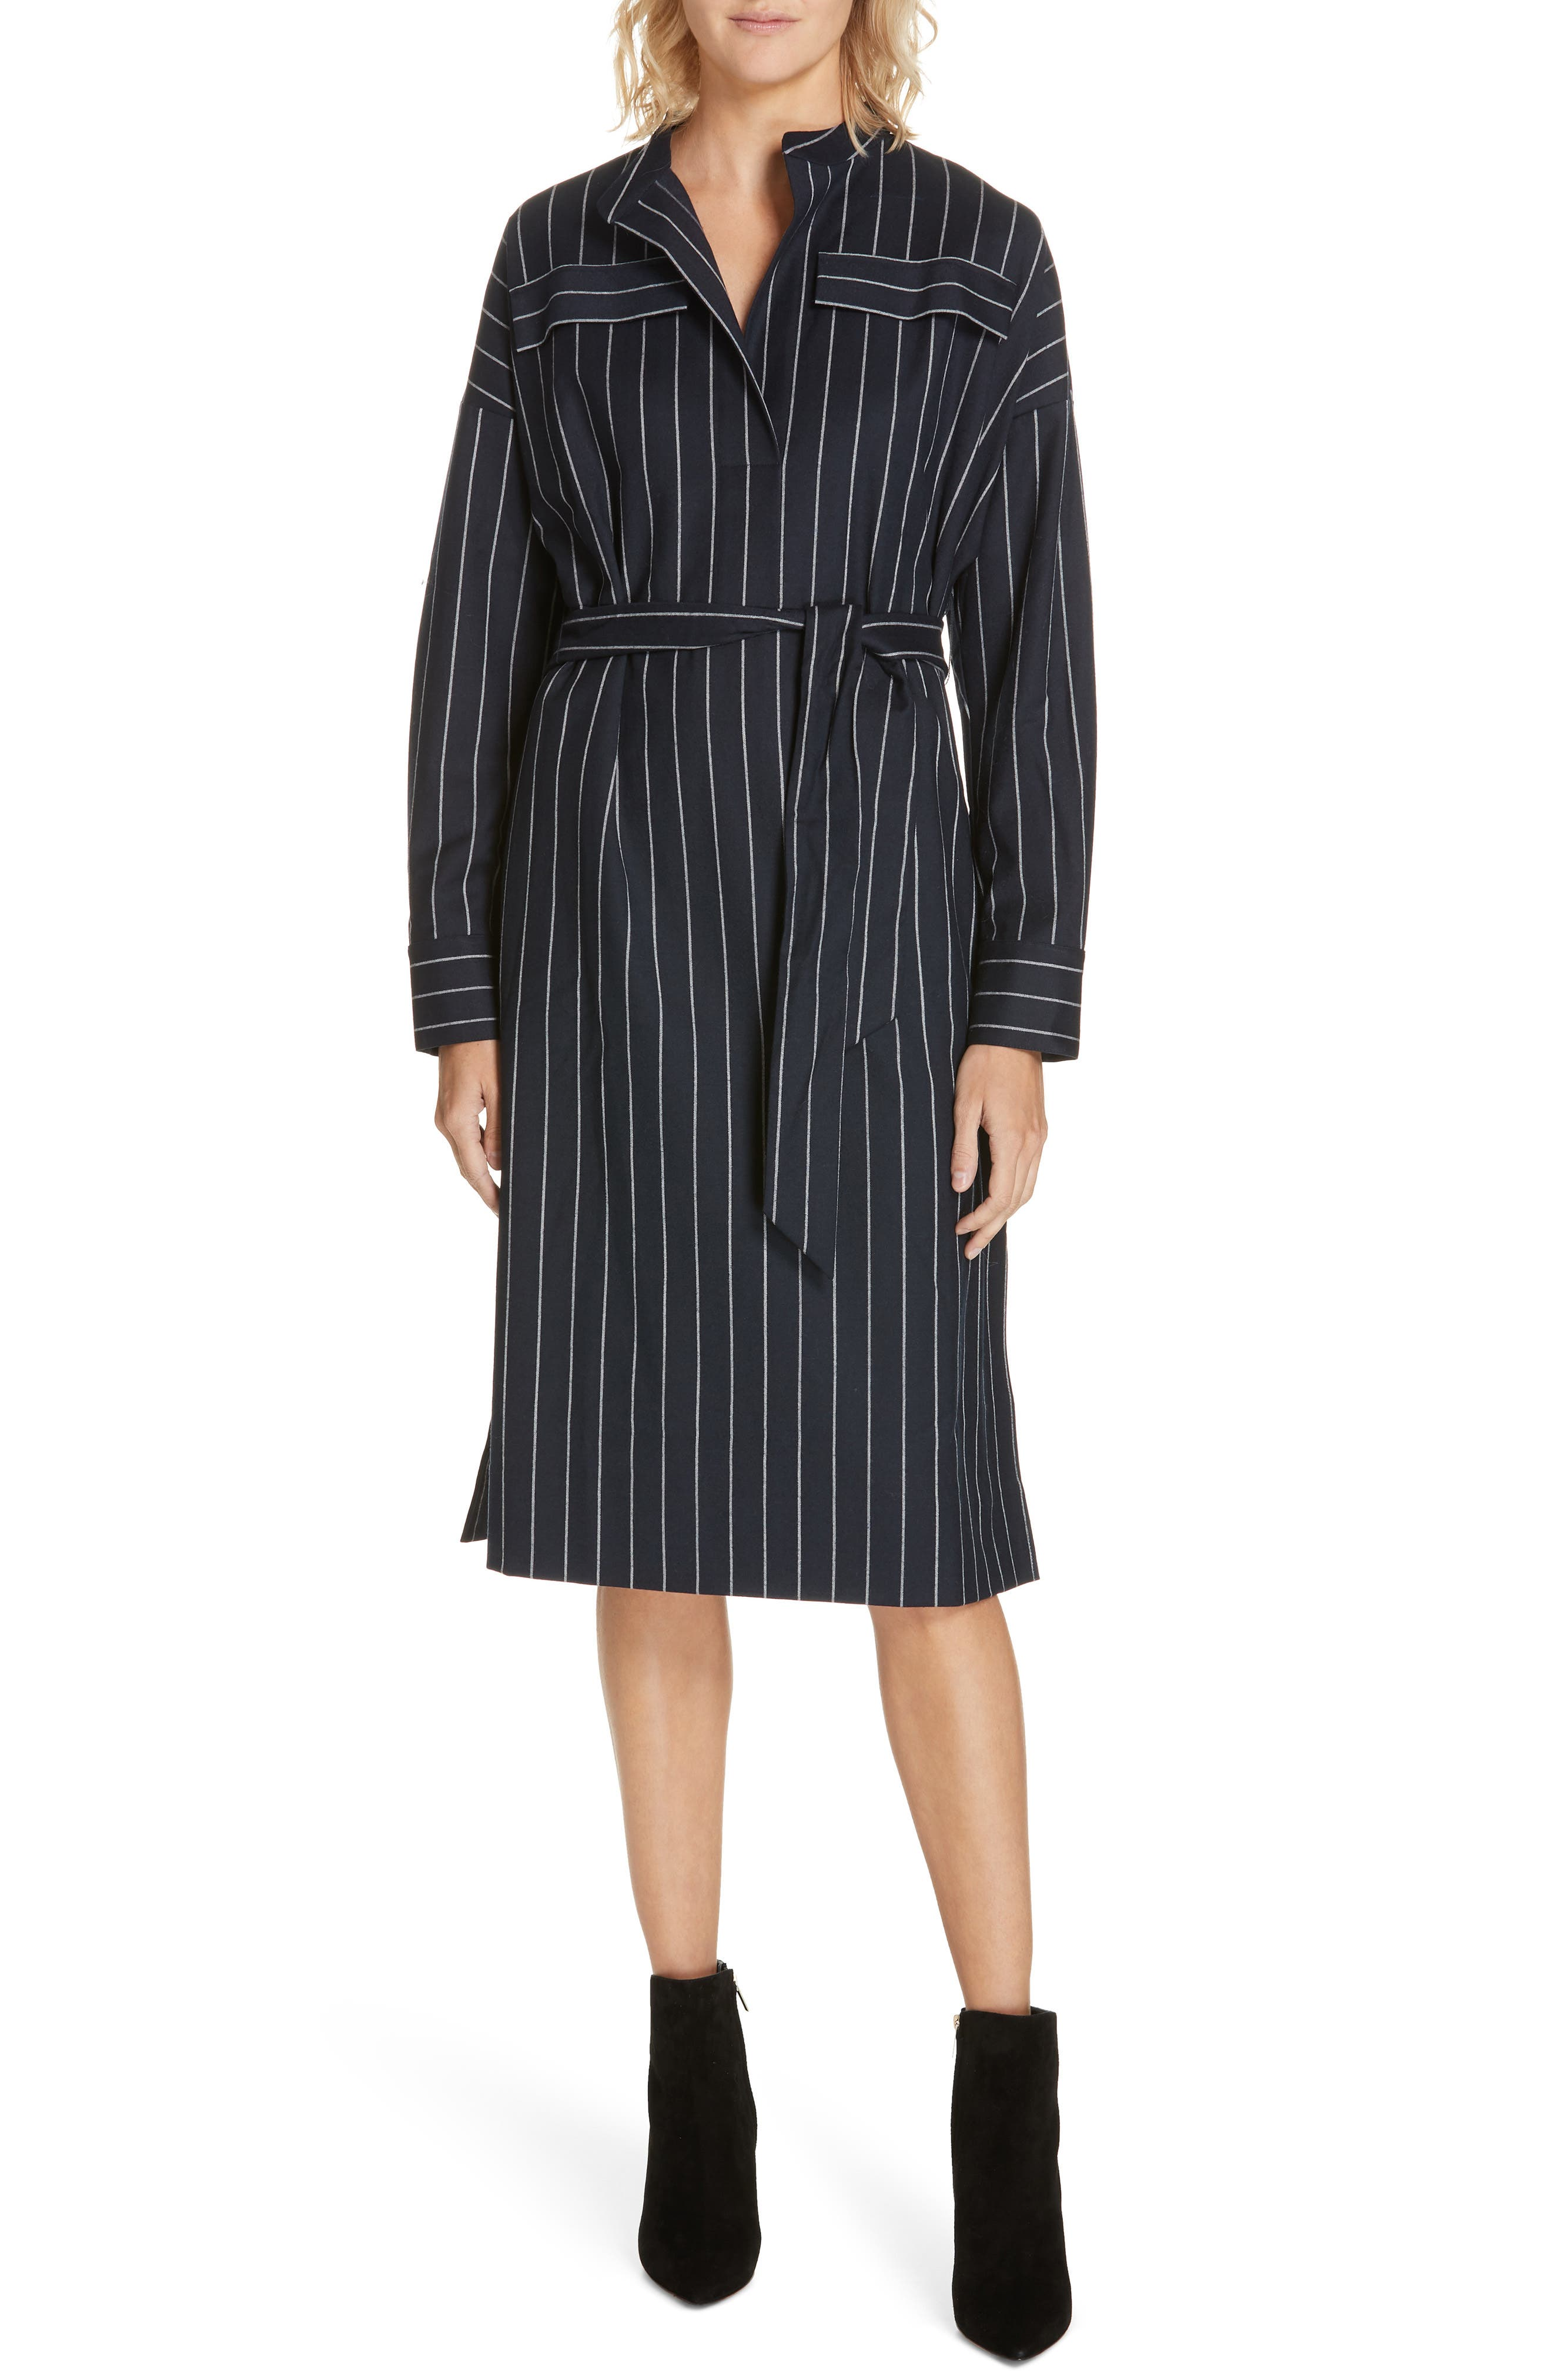 NORDSTROM SIGNATURE,                             Belted Shirtdress,                             Main thumbnail 1, color,                             NAVY- WHITE PREPPY STRIPE